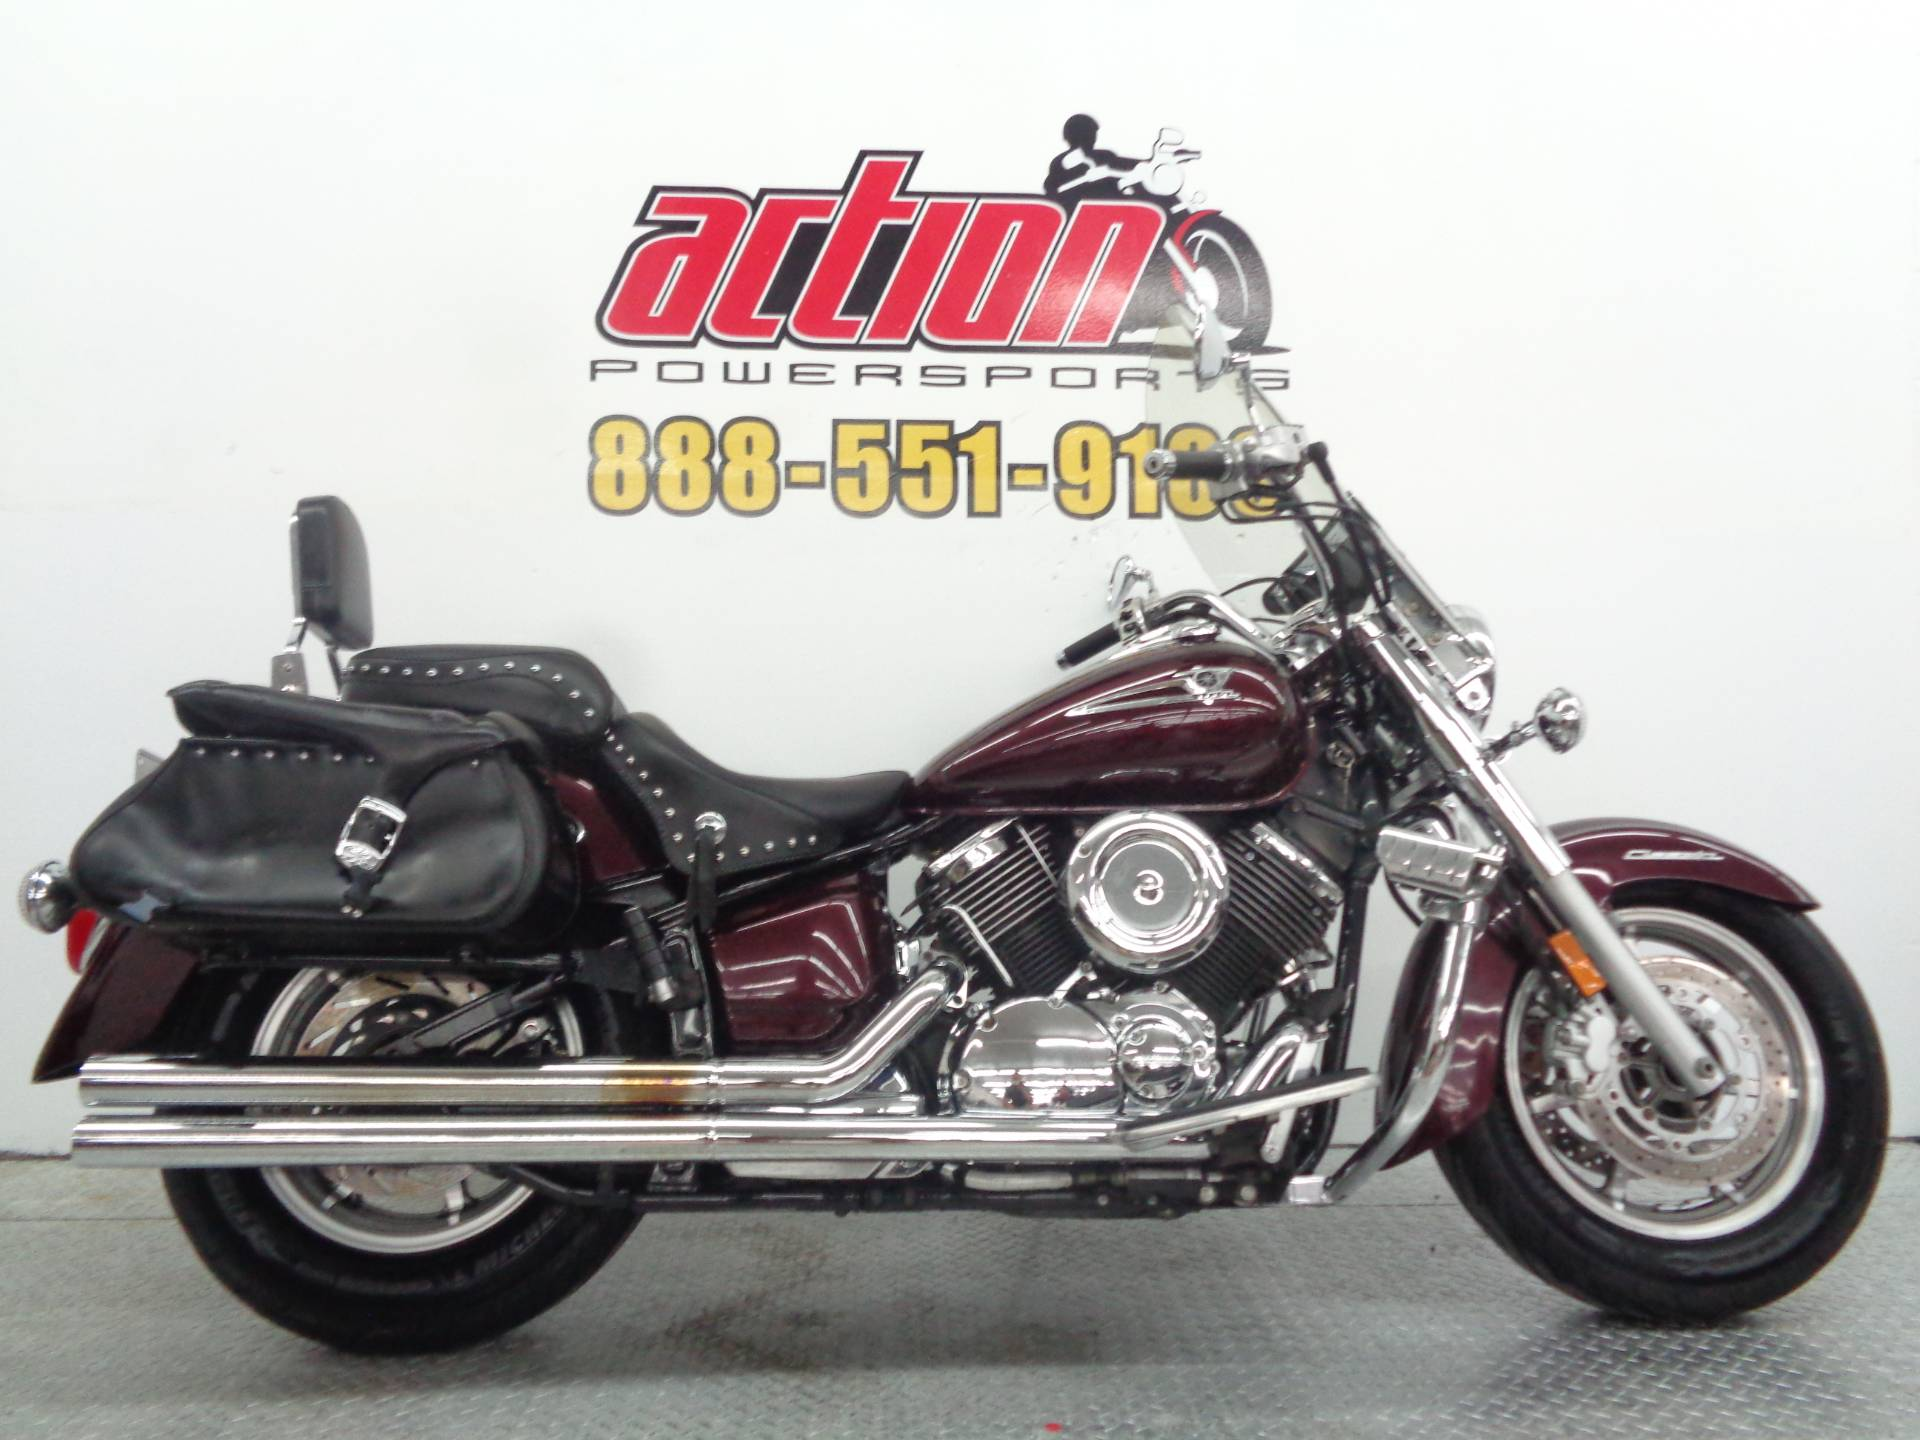 2007 Yamaha V Star® 1100 Silverado® in Tulsa, Oklahoma - Photo 1